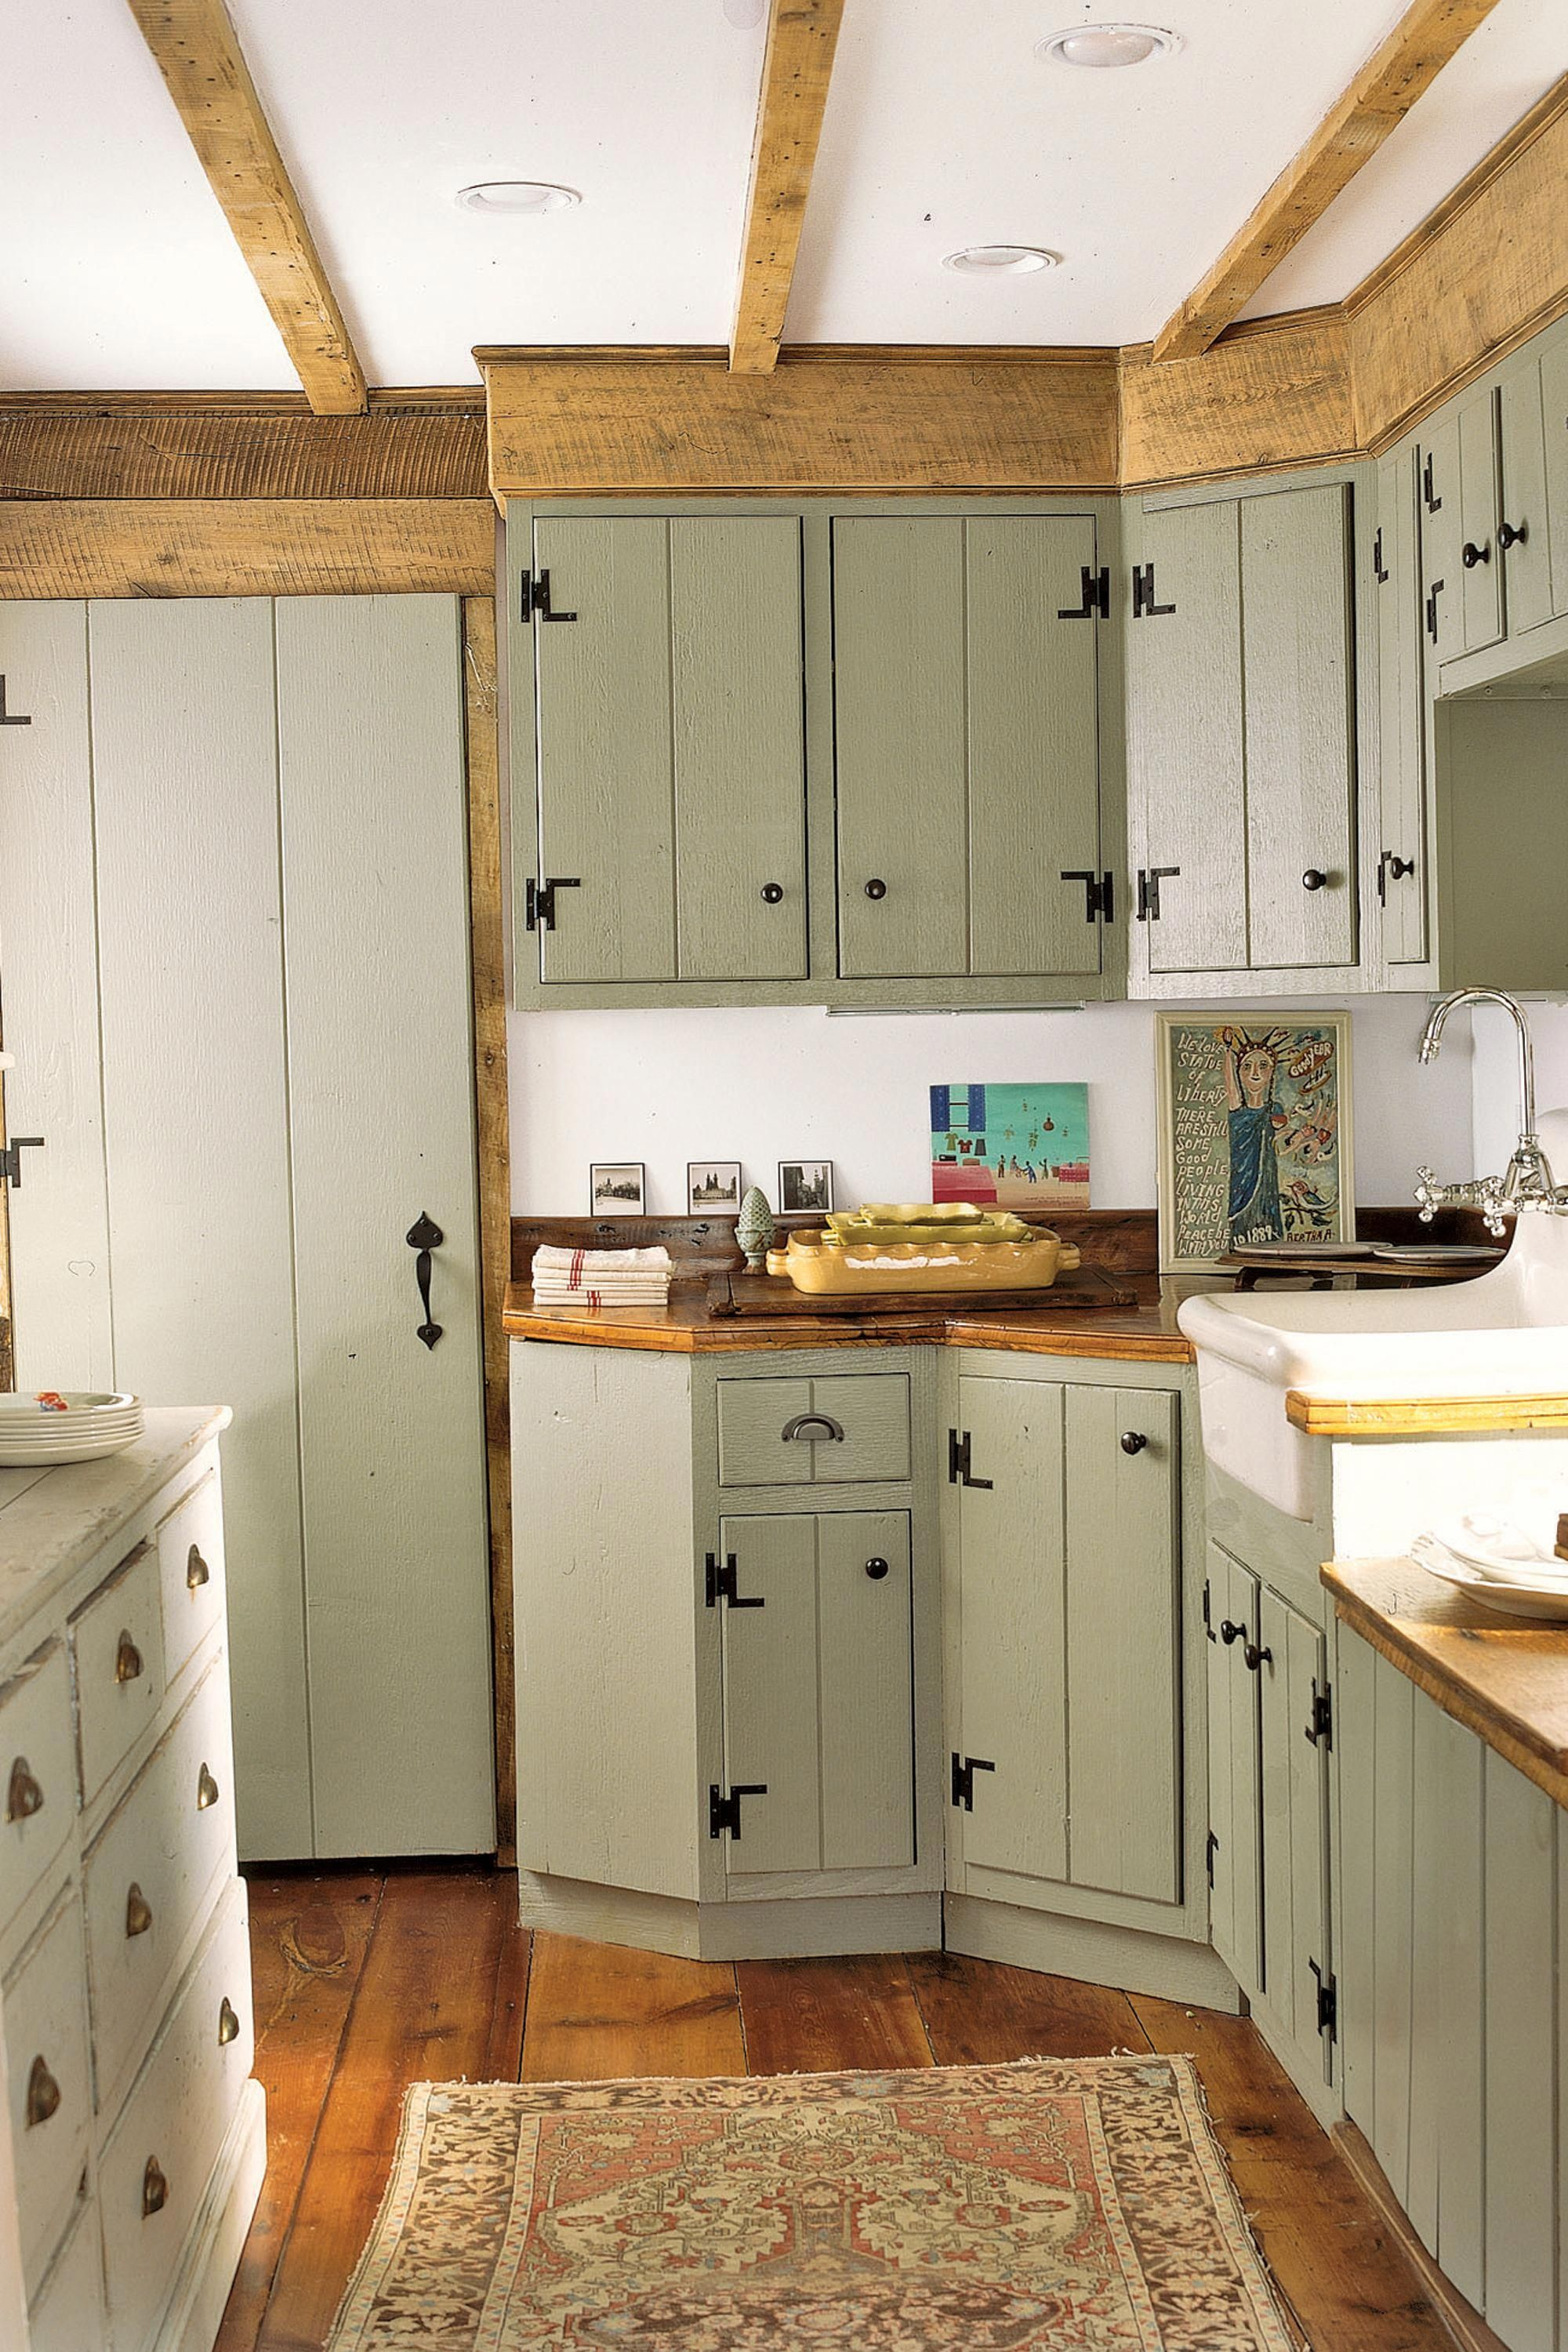 New Green Cabinets In This Old Farmhouse Kitchen Are Outfitted To Look Like They Farmhouse Style Kitchen Cabinets Old Farmhouse Kitchen Kitchen Cabinet Styles